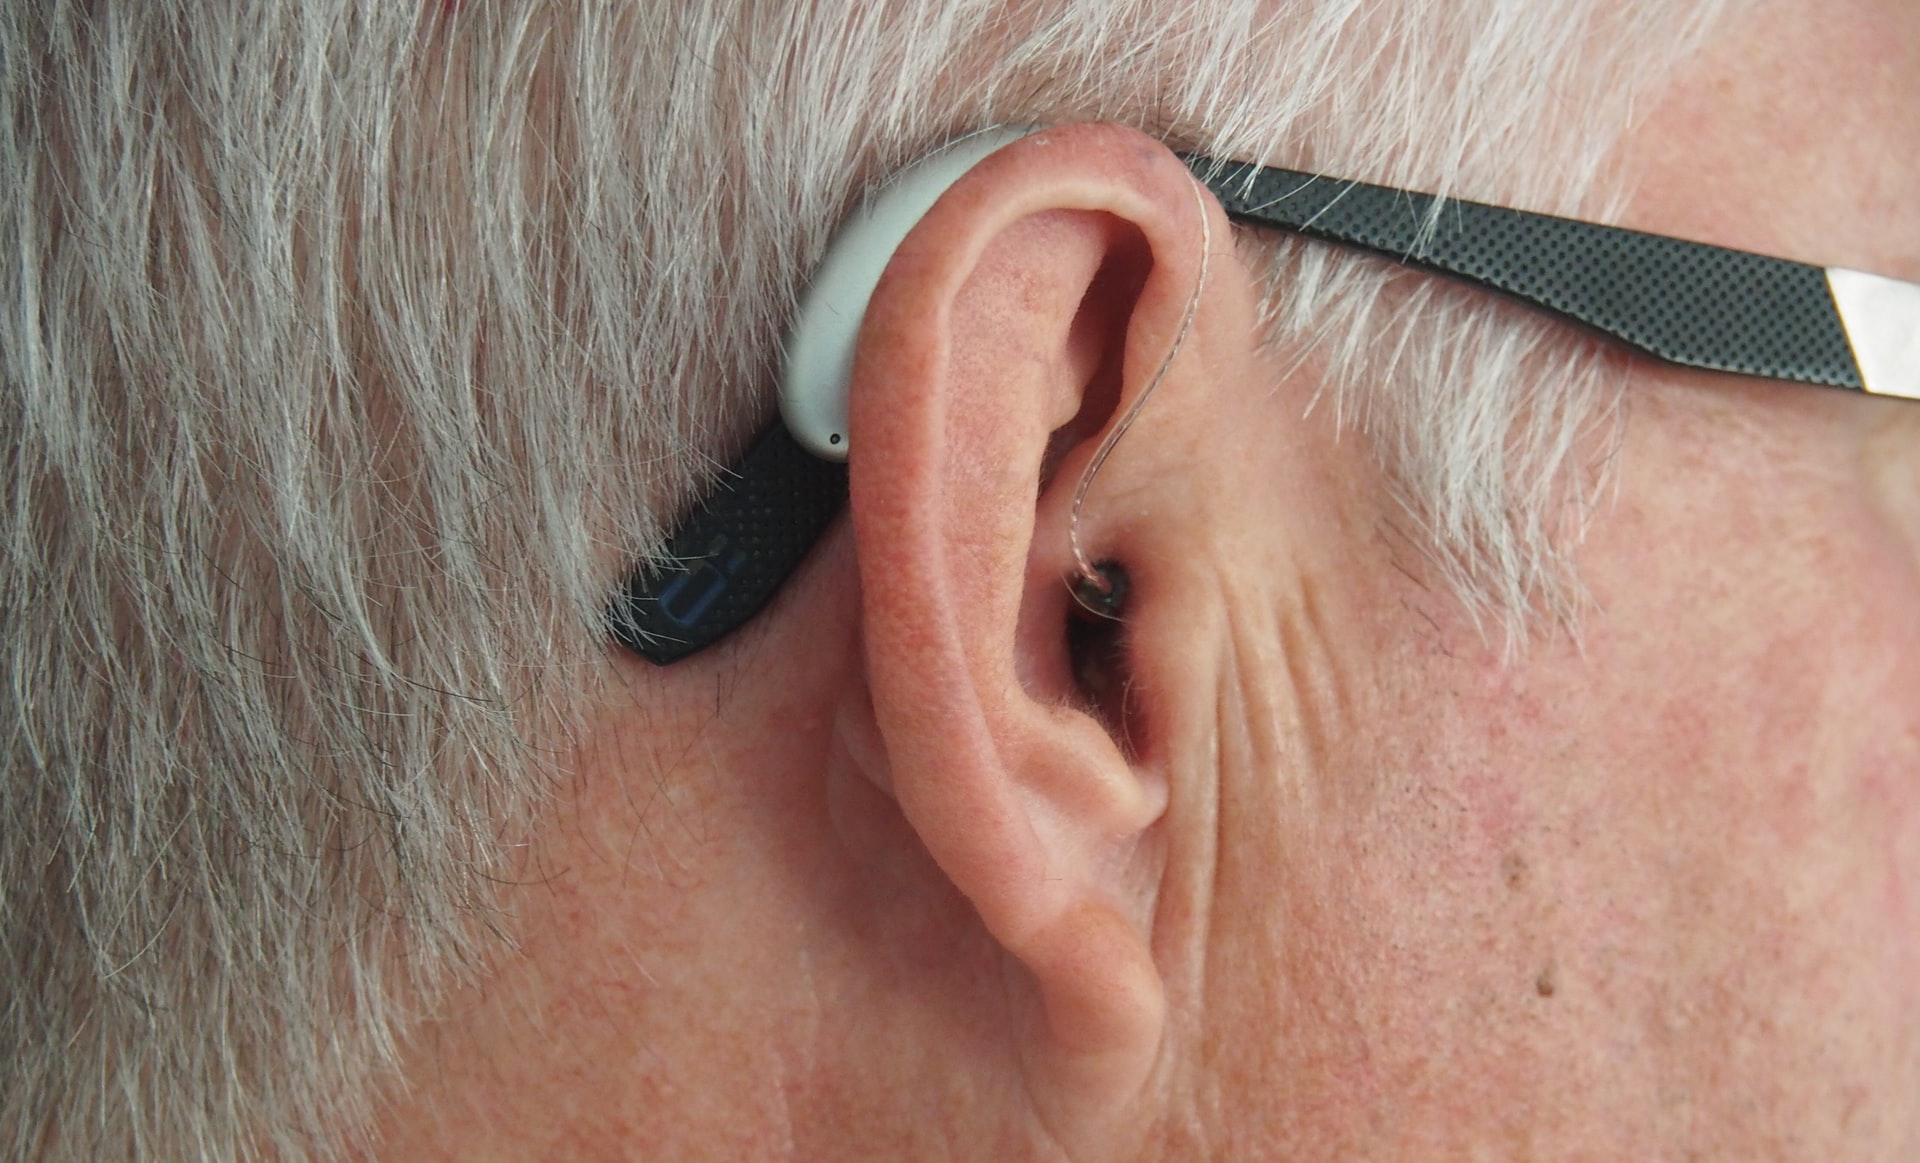 Hearing aid with glasses